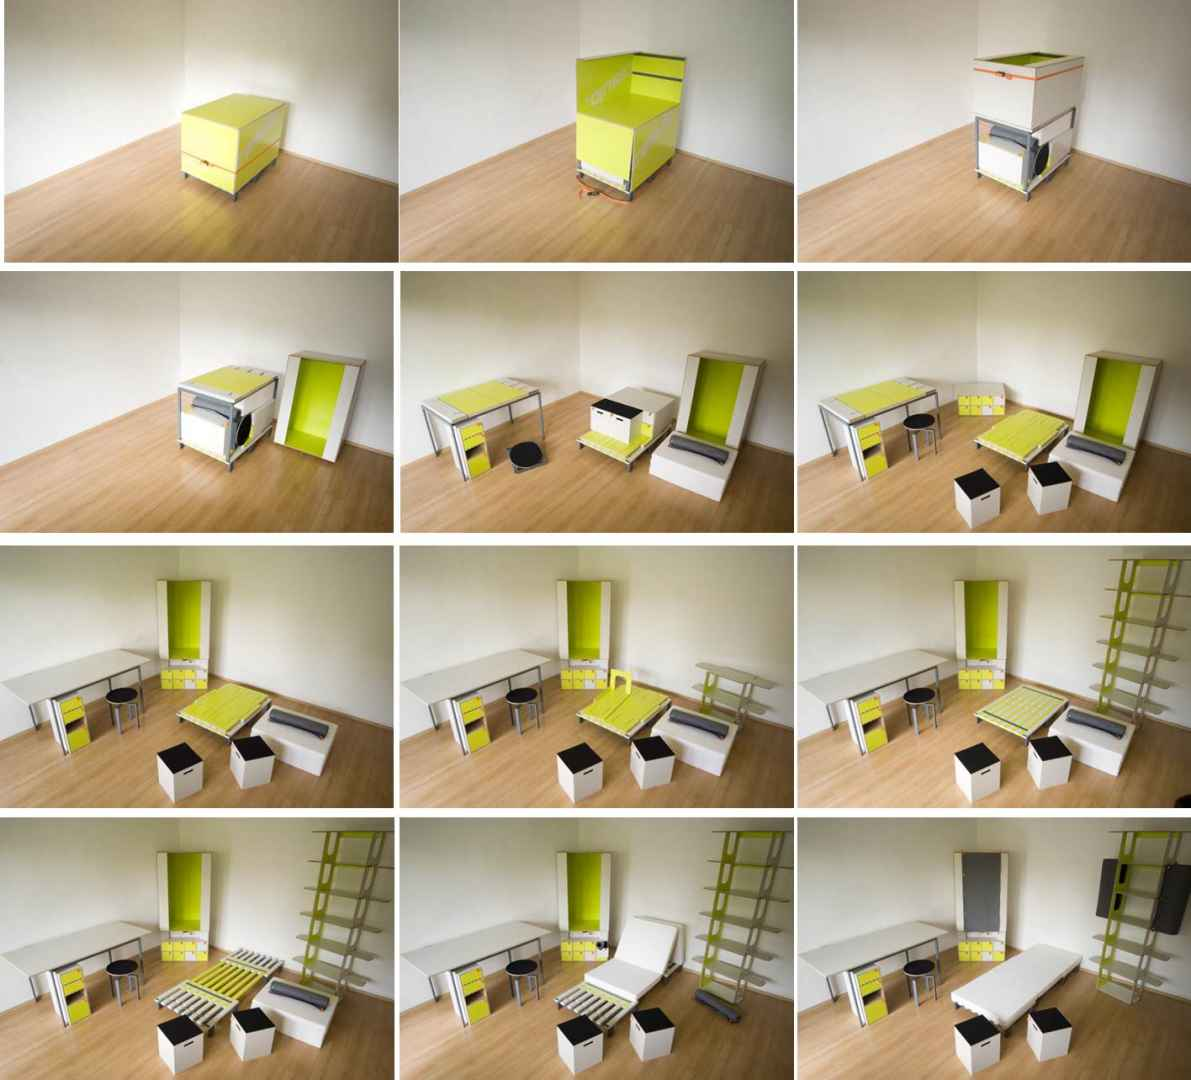 casulo an entire apartment s furniture in e small box furniture for 1 bedroom apartment Introduction, Tiny Houses